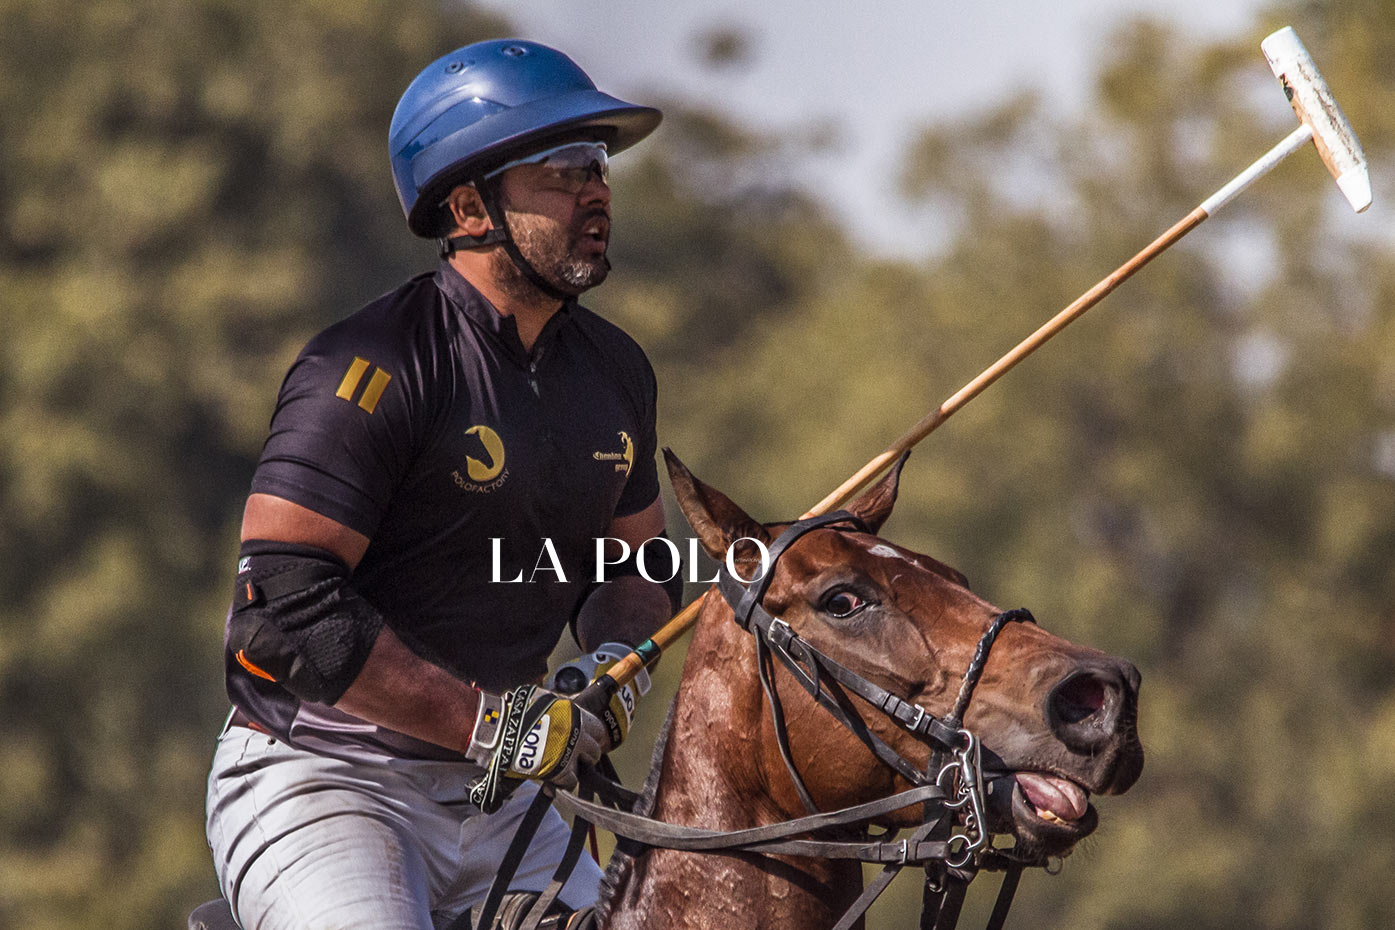 """I will do whatever I can for polo"": Ashok Chandna"